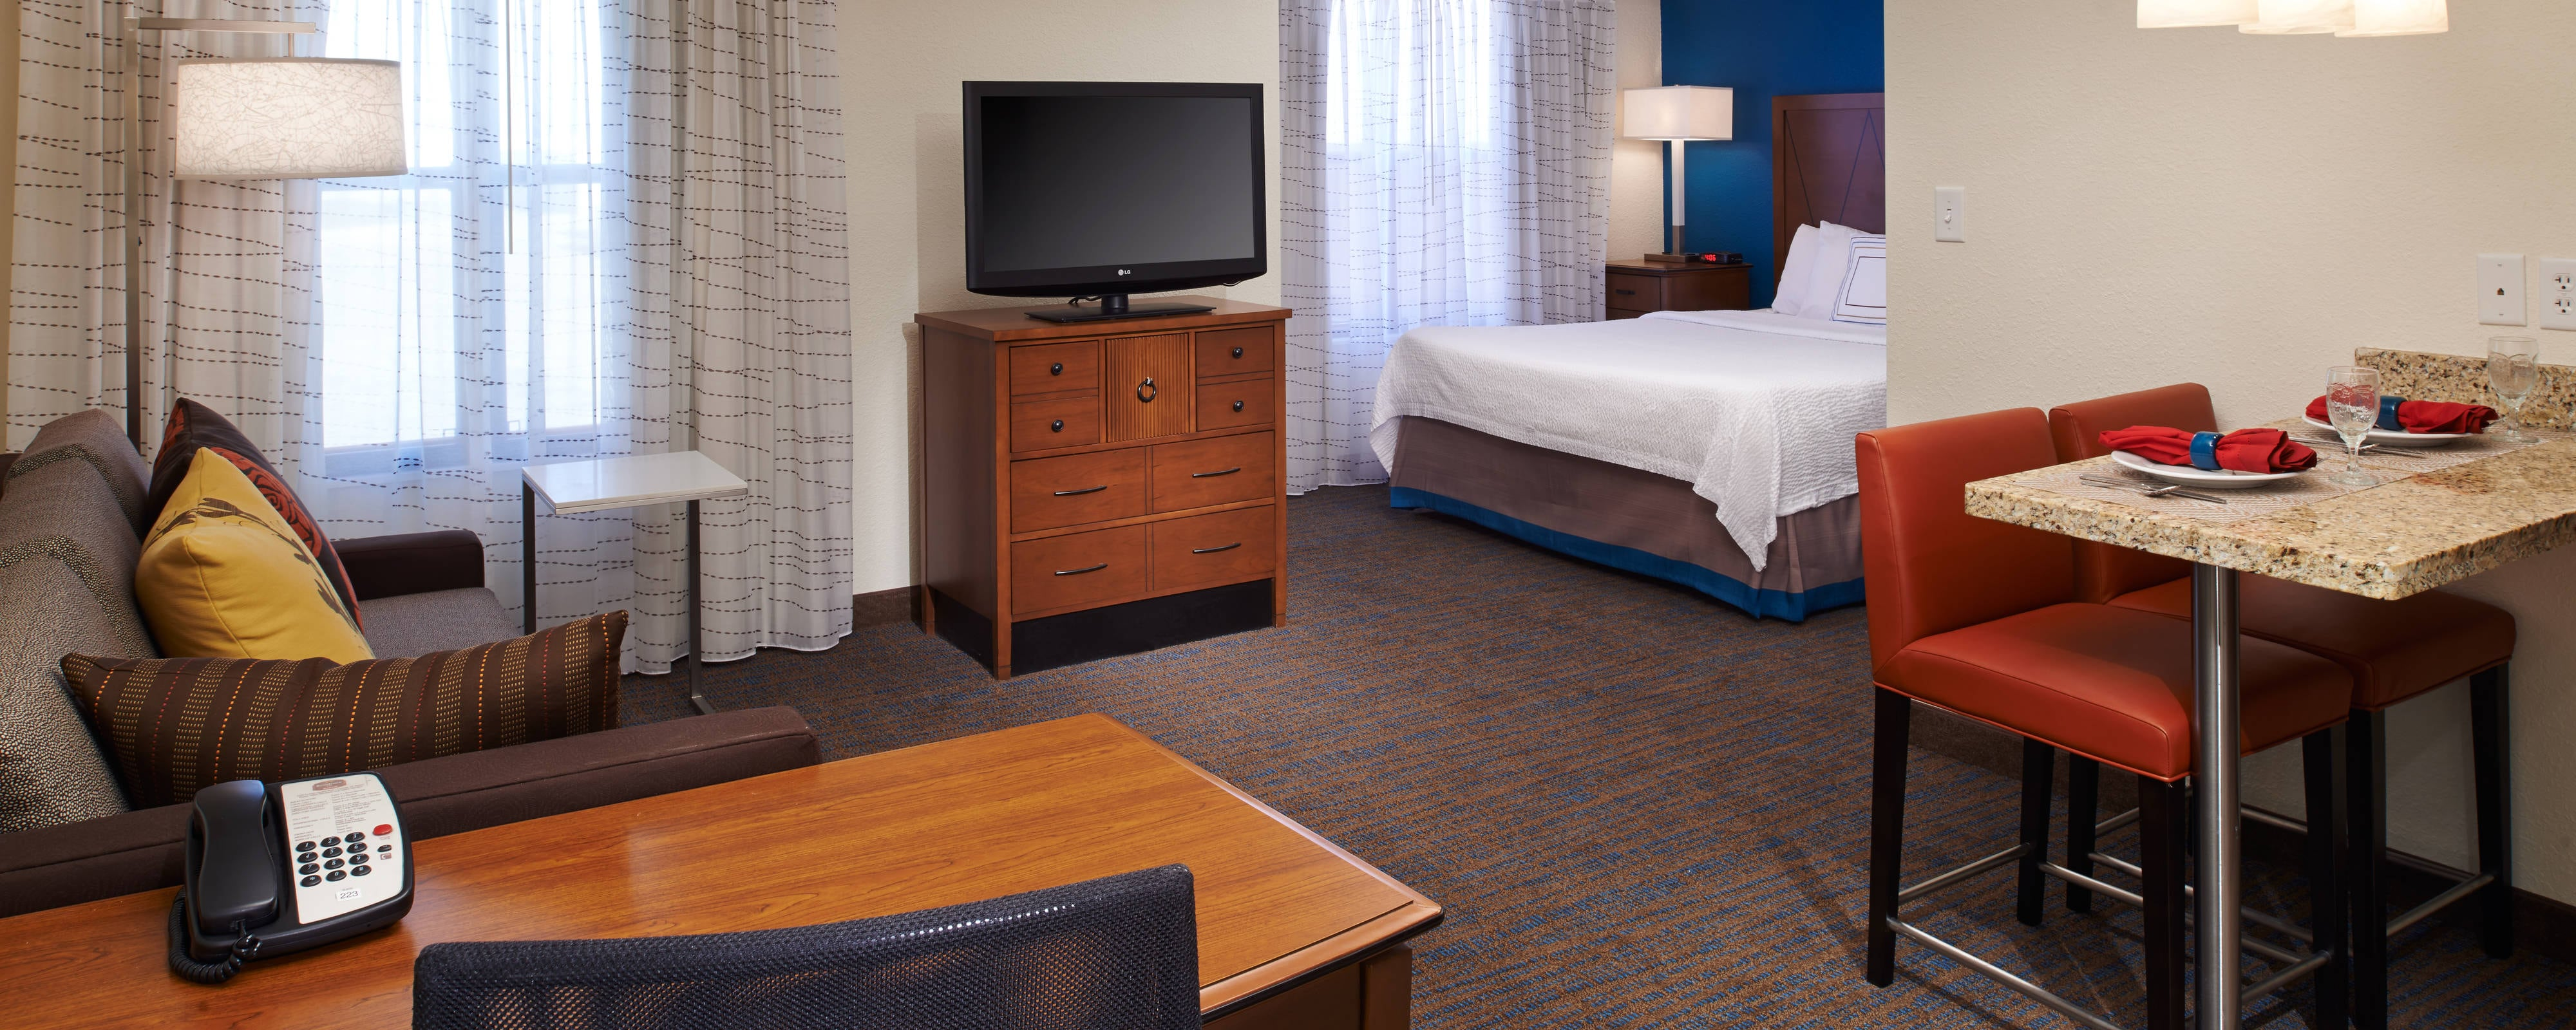 Extended Stay Suite In Saginaw